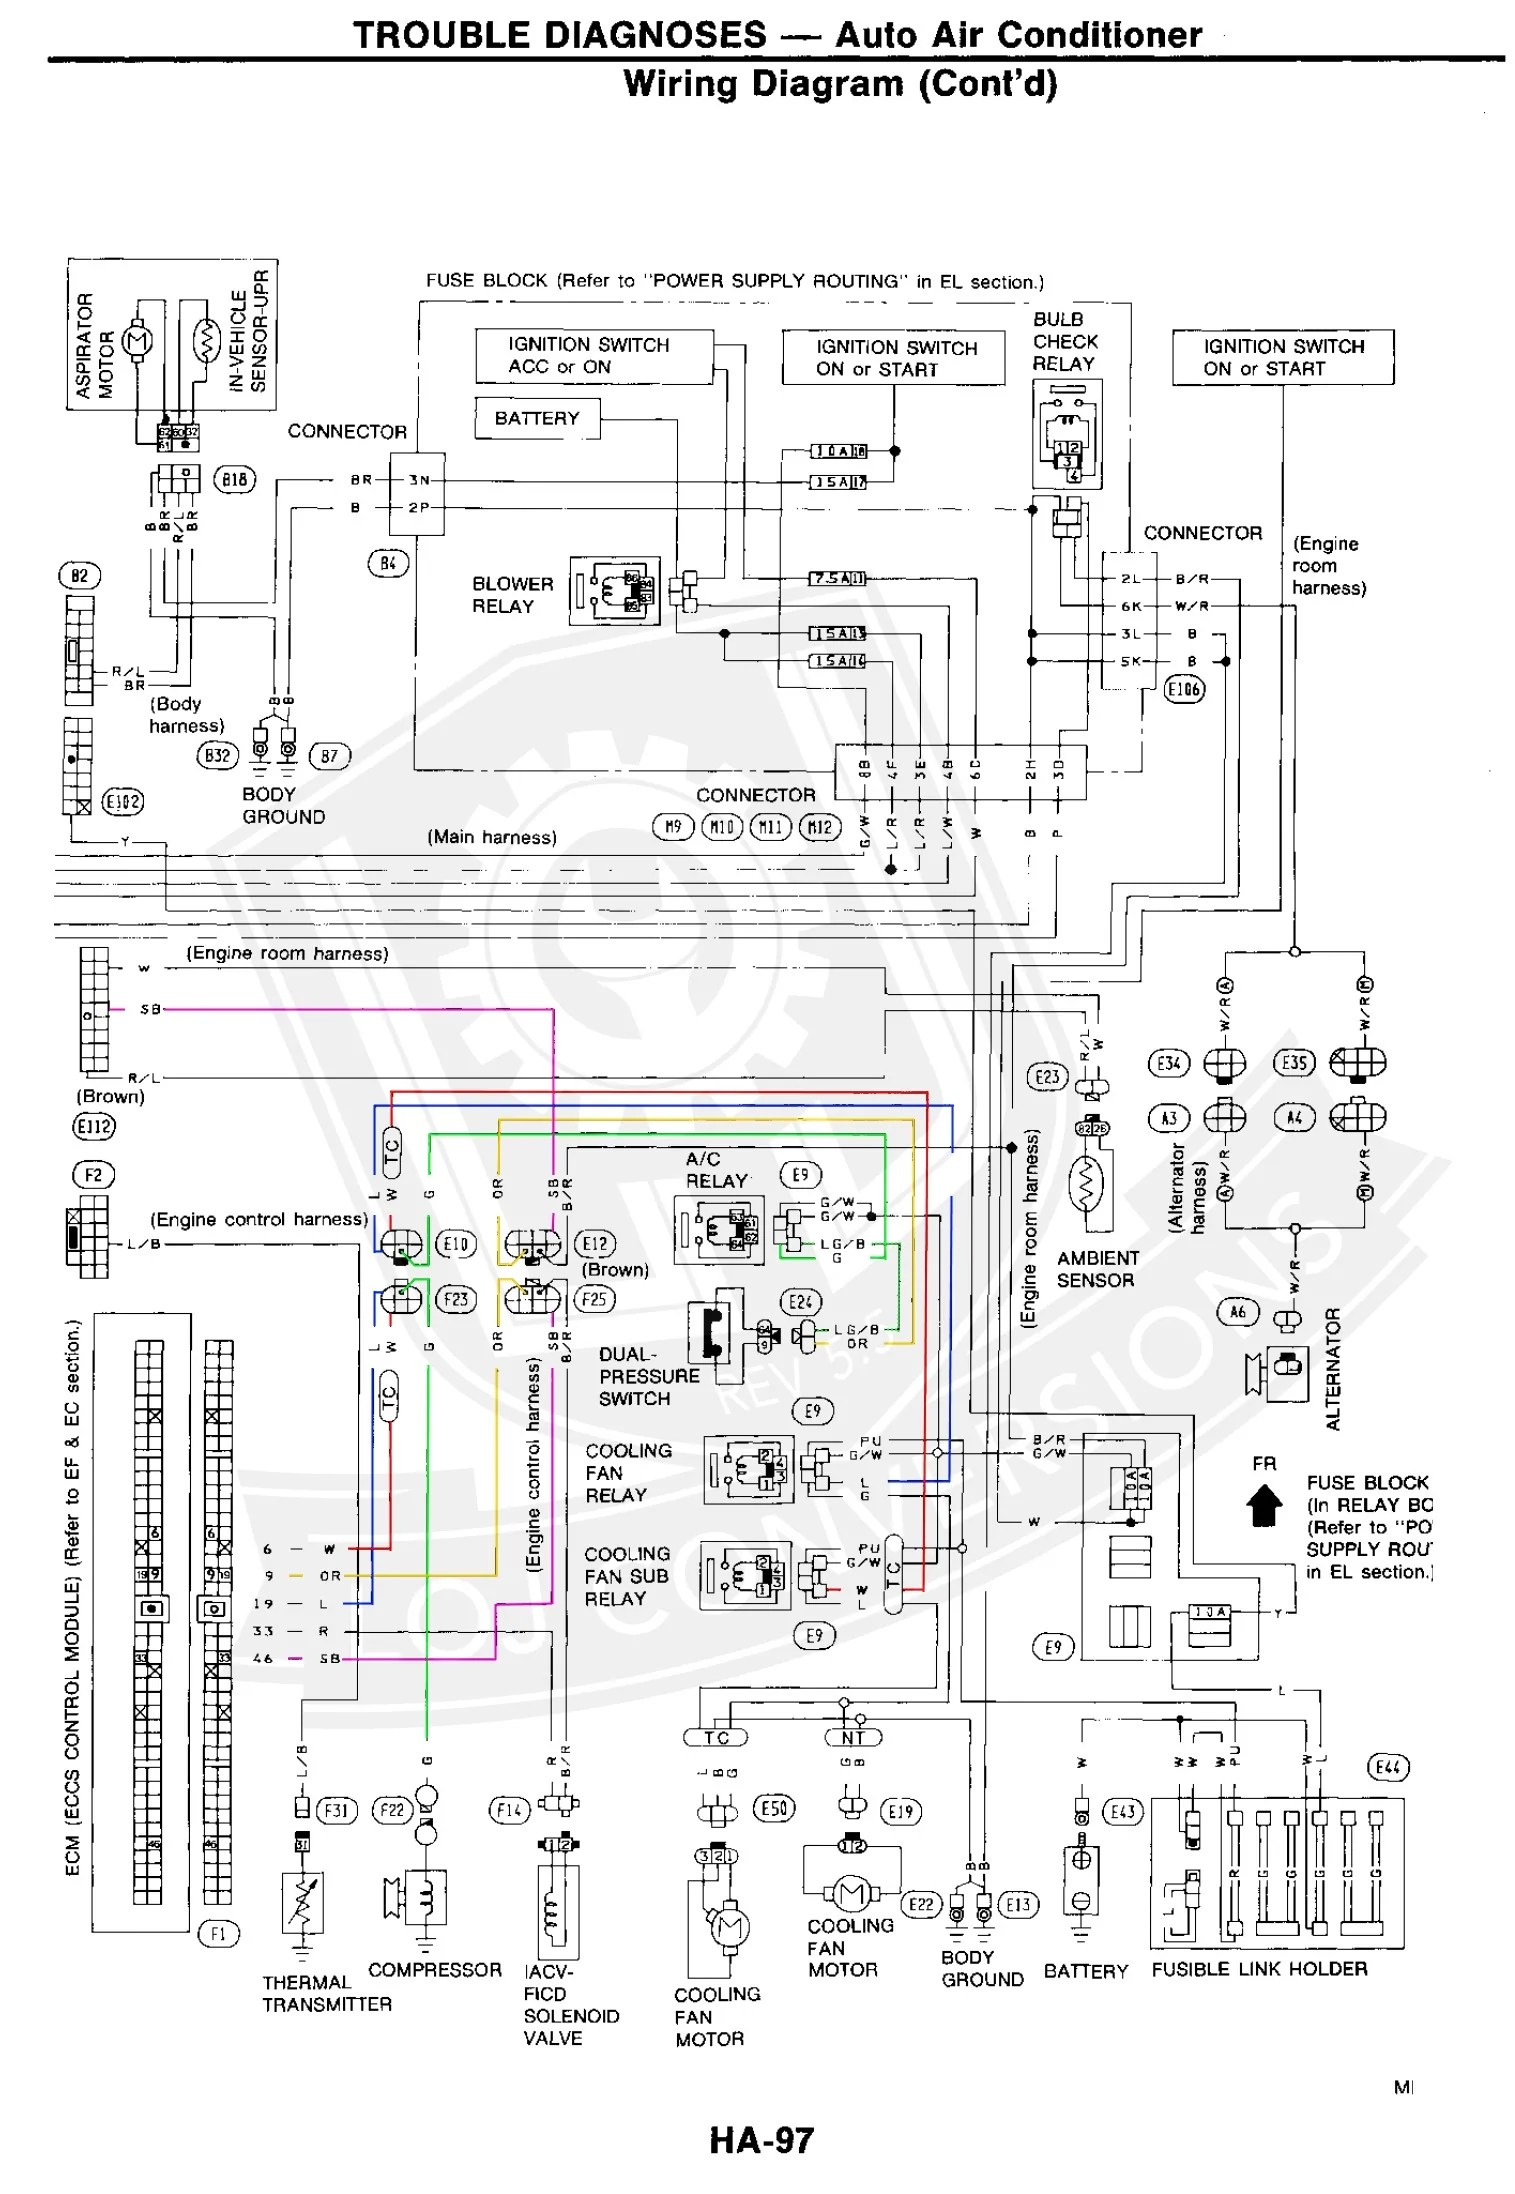 hight resolution of 1990 nissan 300zx fuse panel diagram wiring schematic wiring 1990 nissan 300zx fuse panel diagram